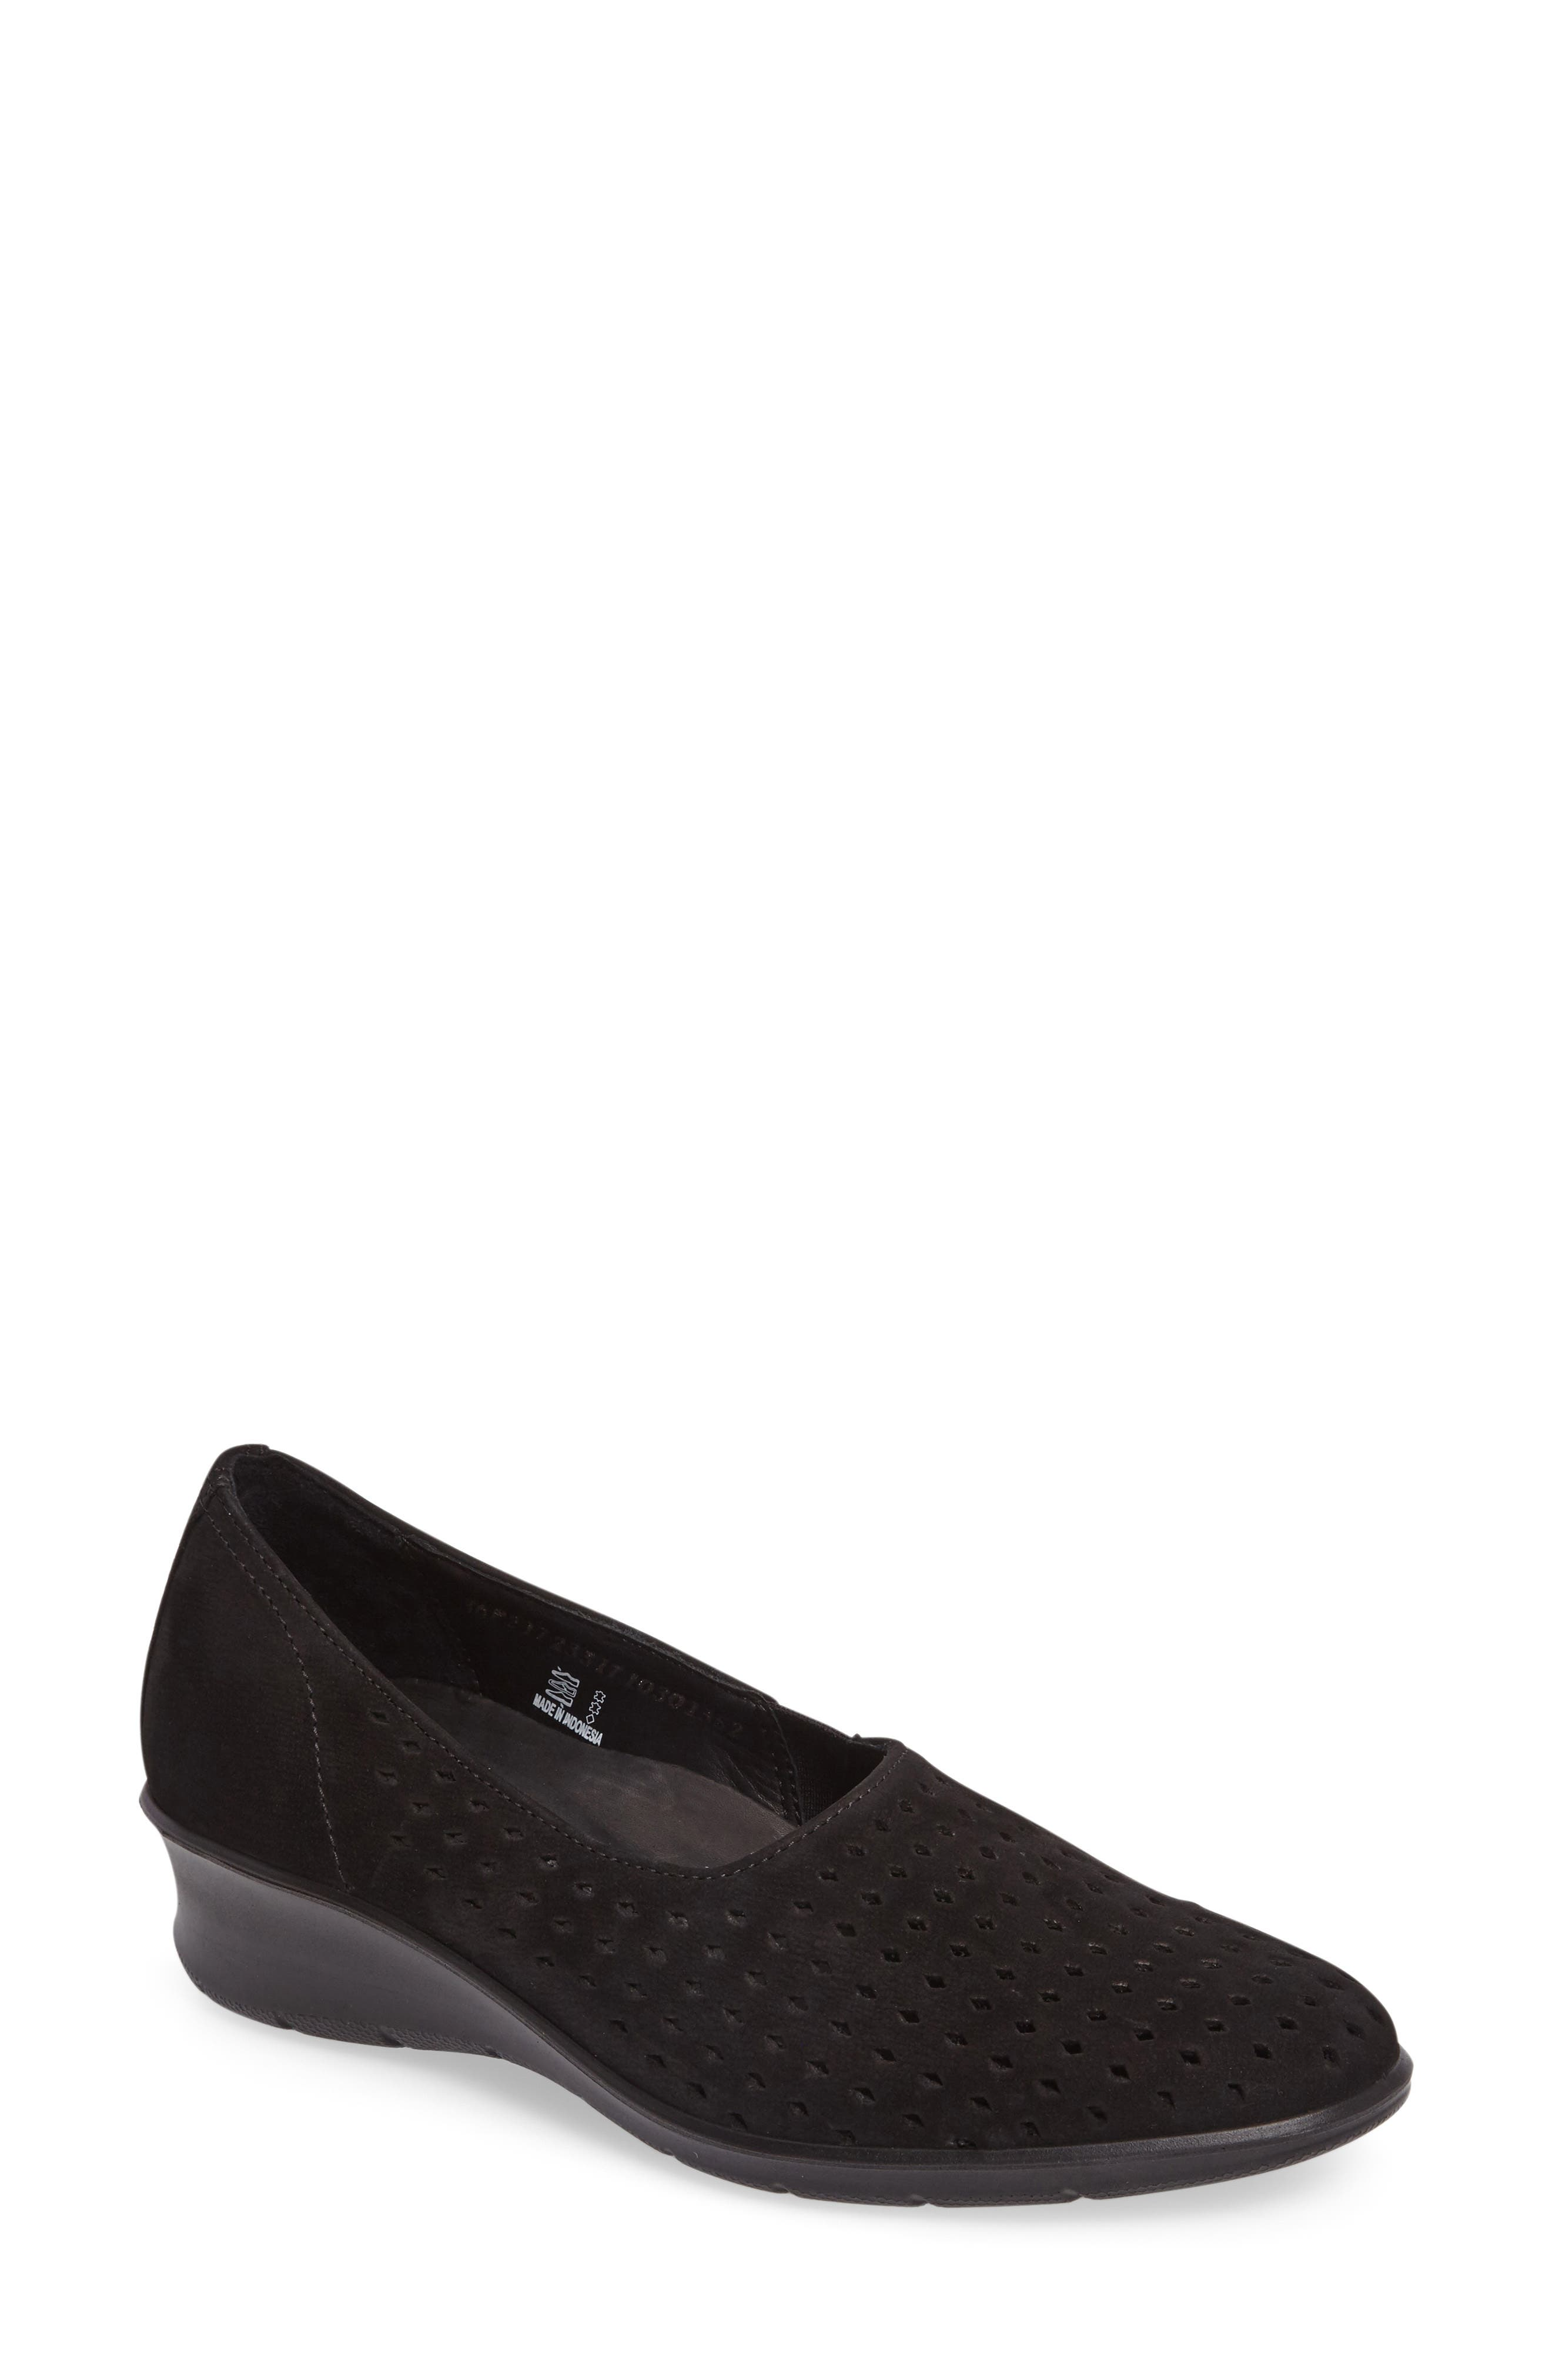 Felicia Summer Loafer,                             Main thumbnail 1, color,                             Black Leather